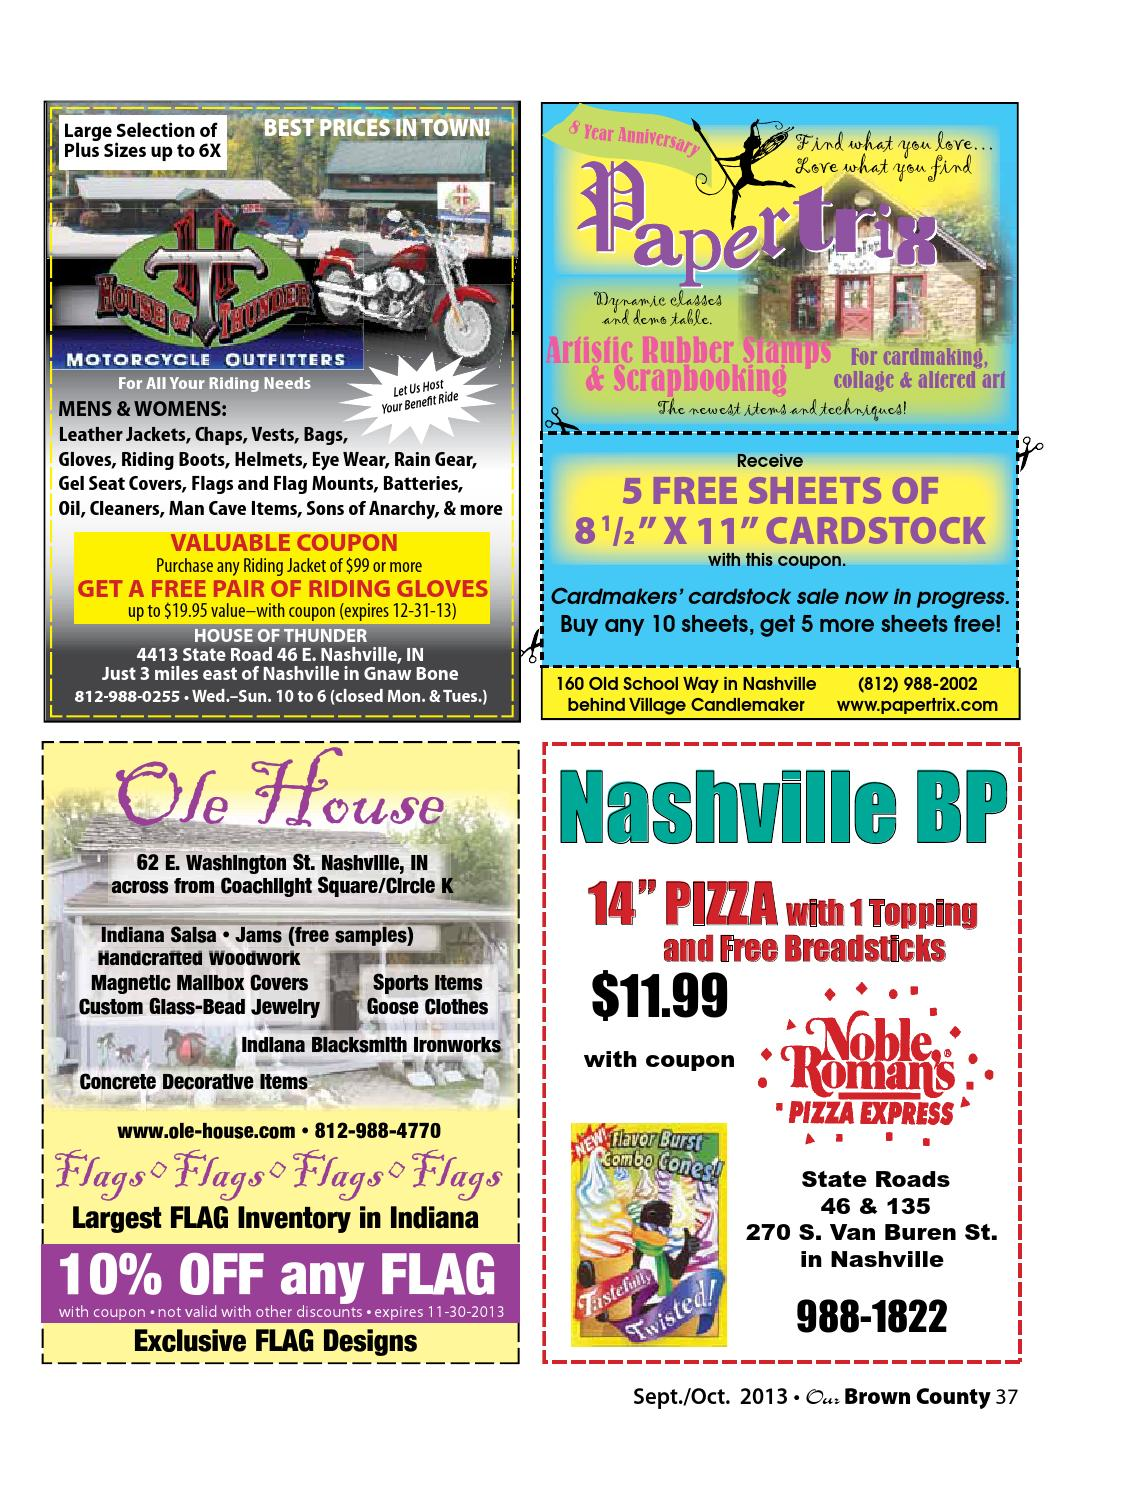 Sept/Oct 2013 OUR BROWN COUNTY magazine by Our Brown County